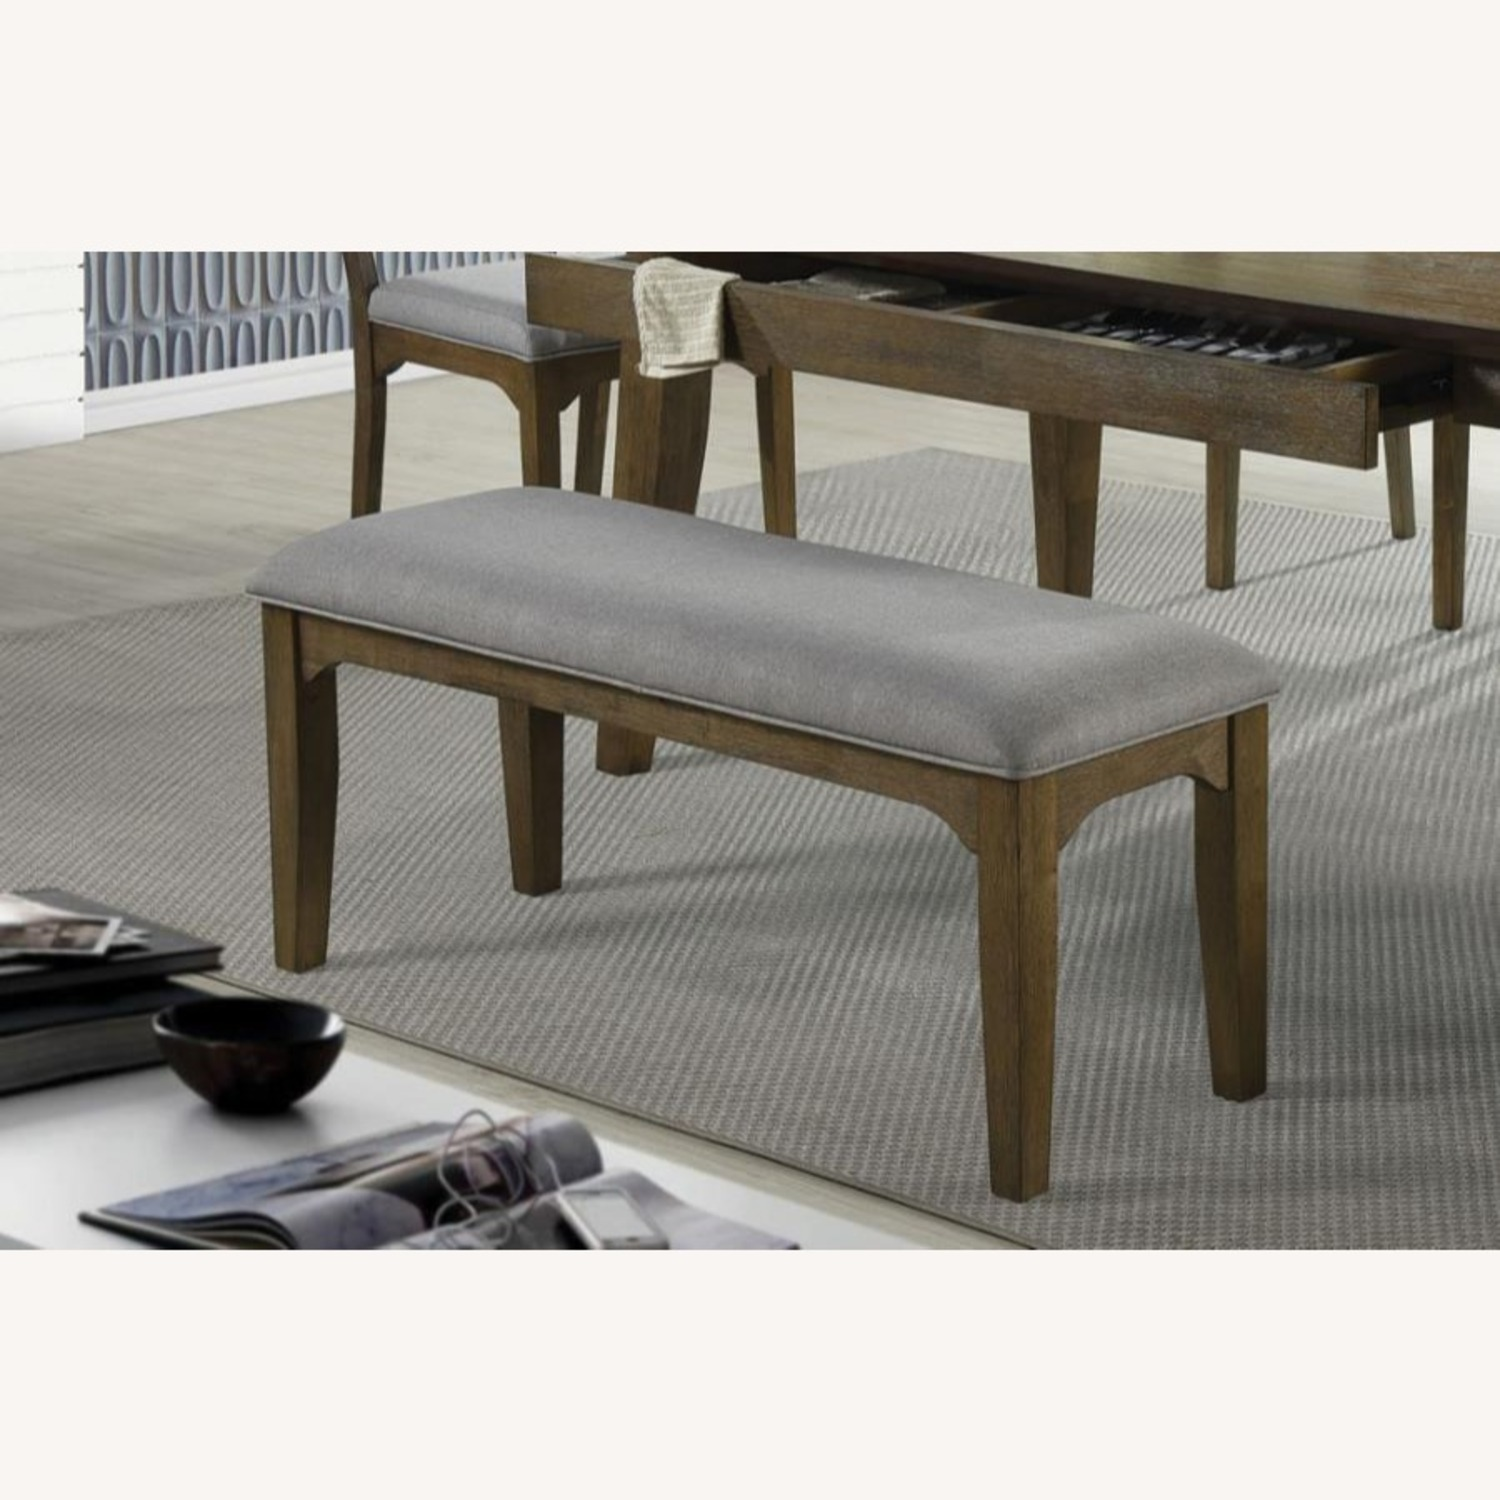 Bench In Asian Hardwood & Grey Fabric Upholstery - image-1